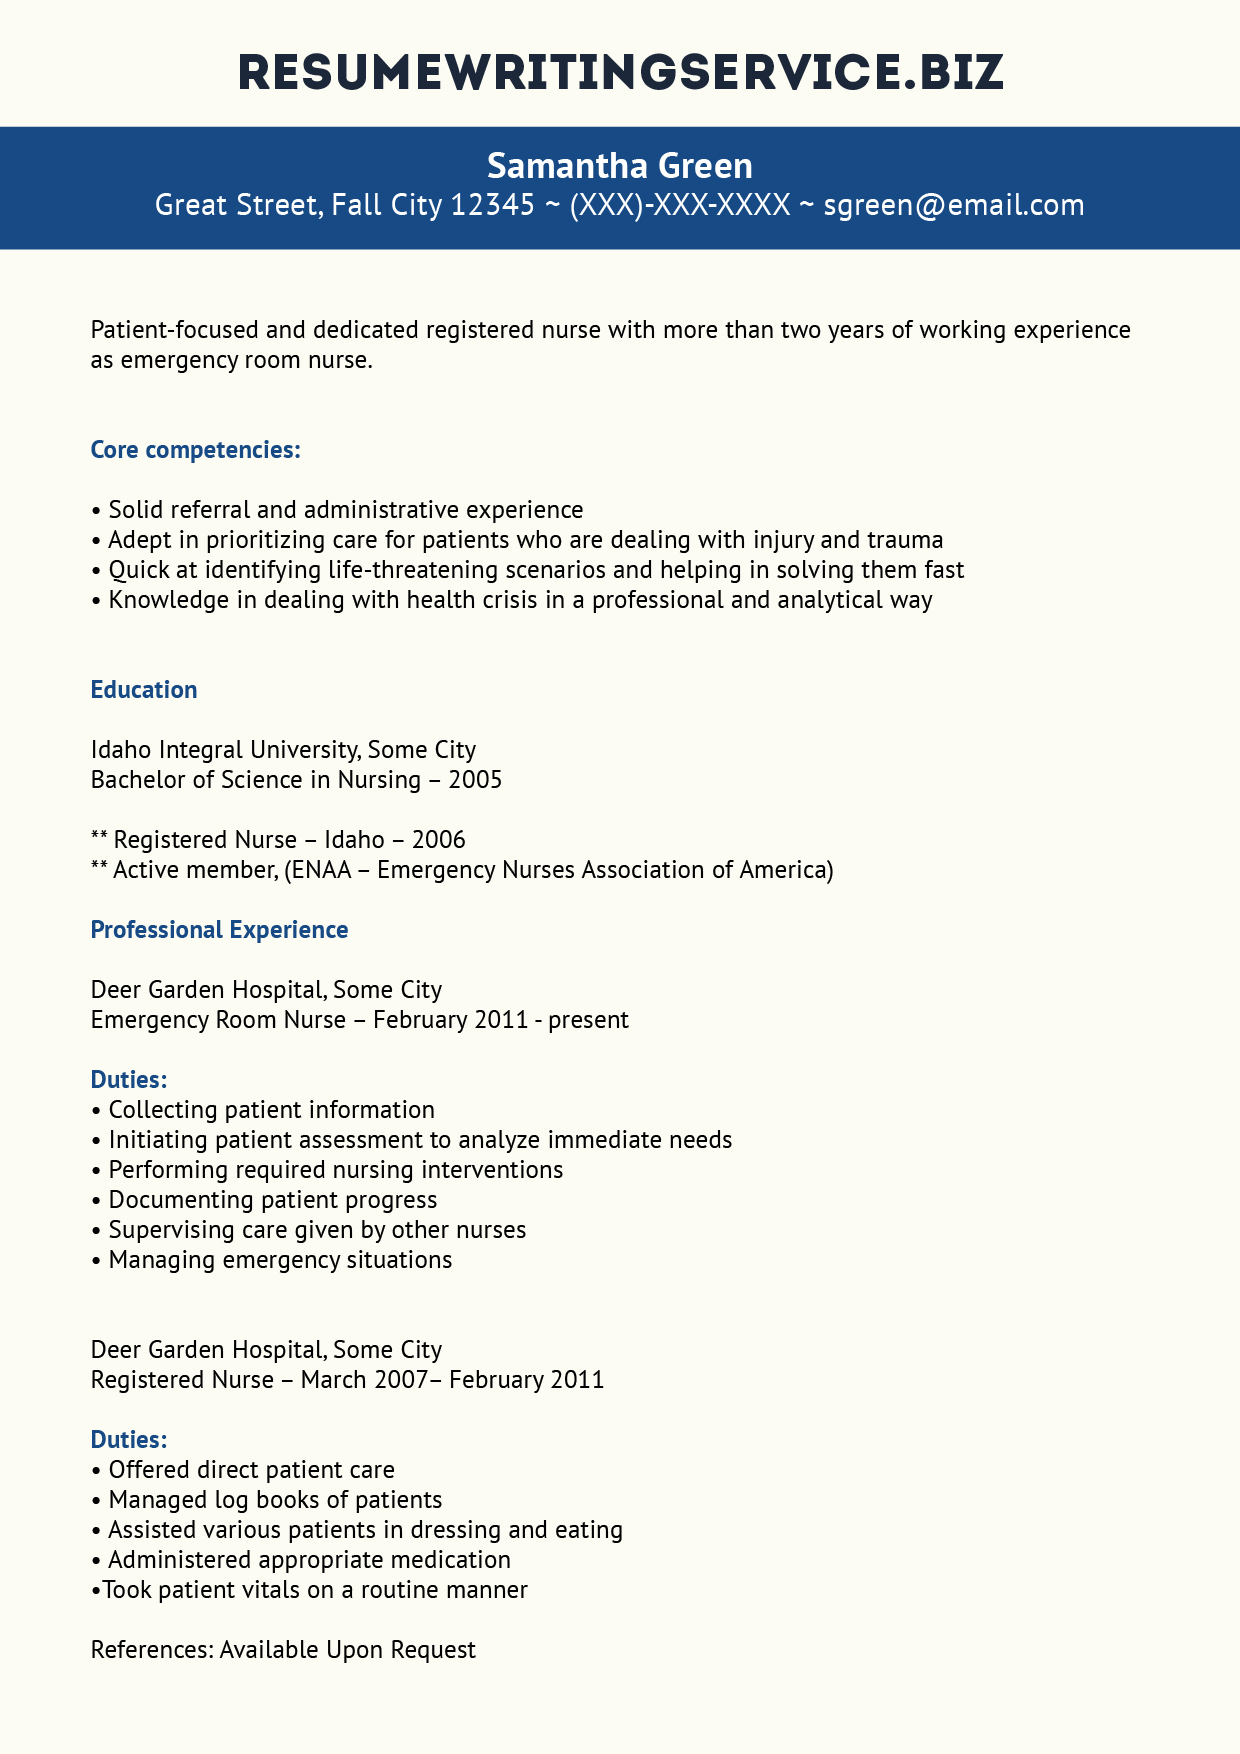 Home Health Registered Nurse Resume